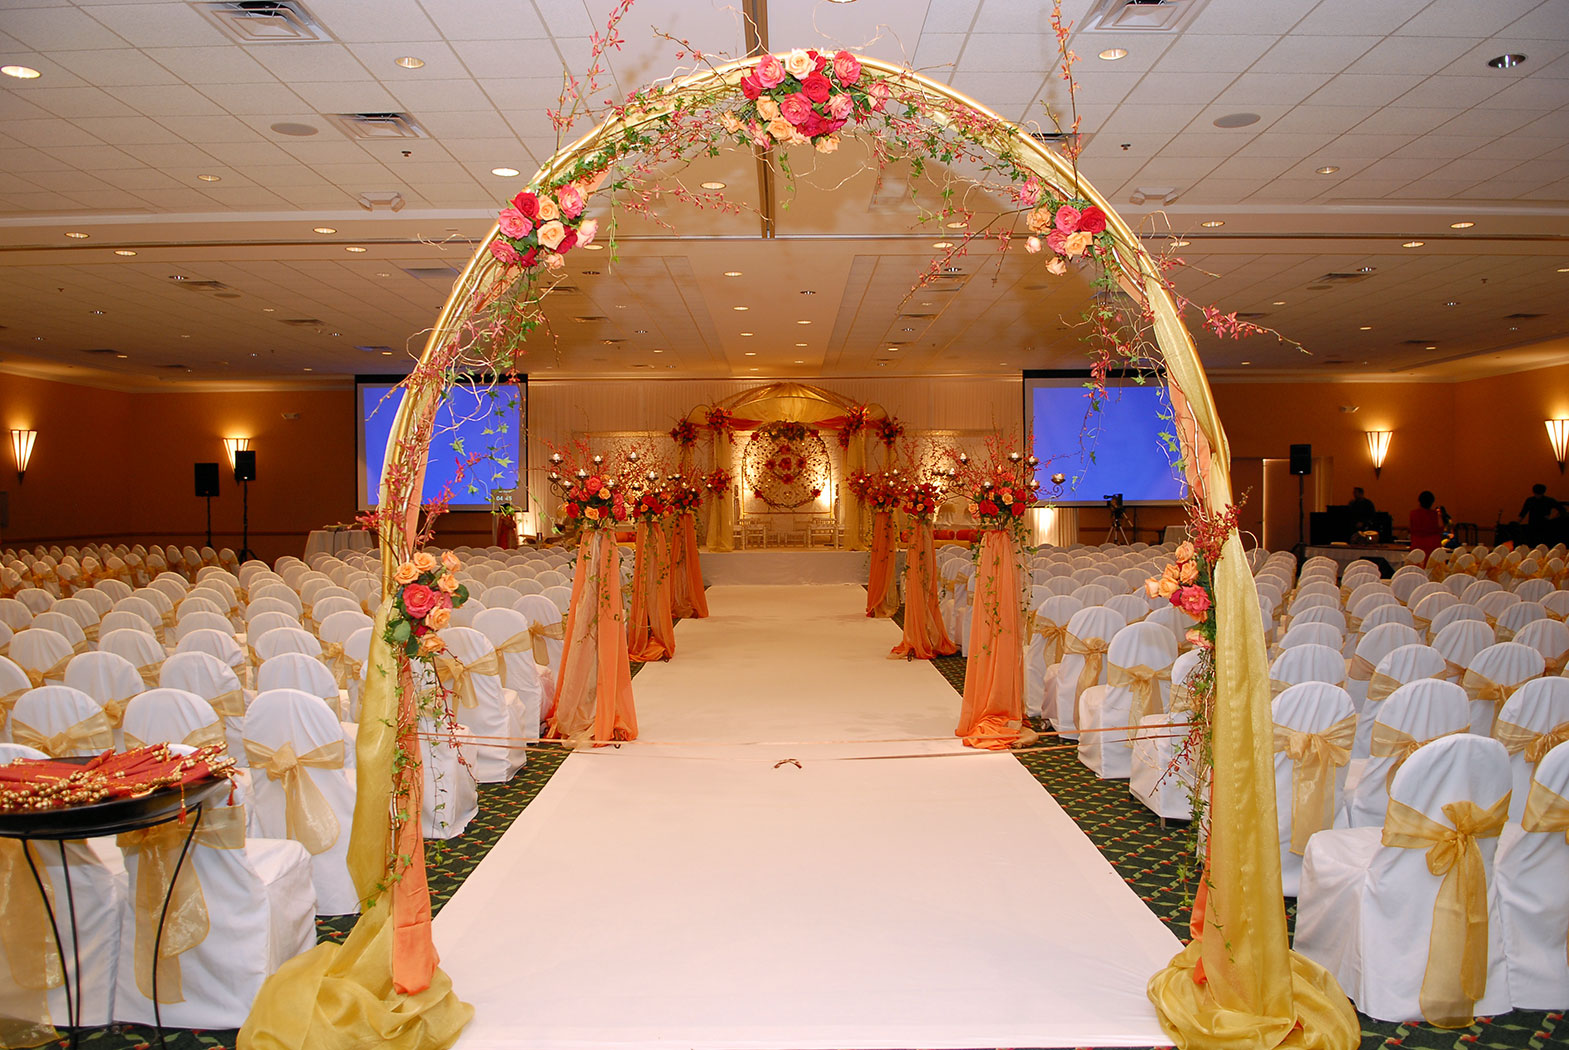 weddign ceremony set up with arch leading to the aisle with white chairs on both sides